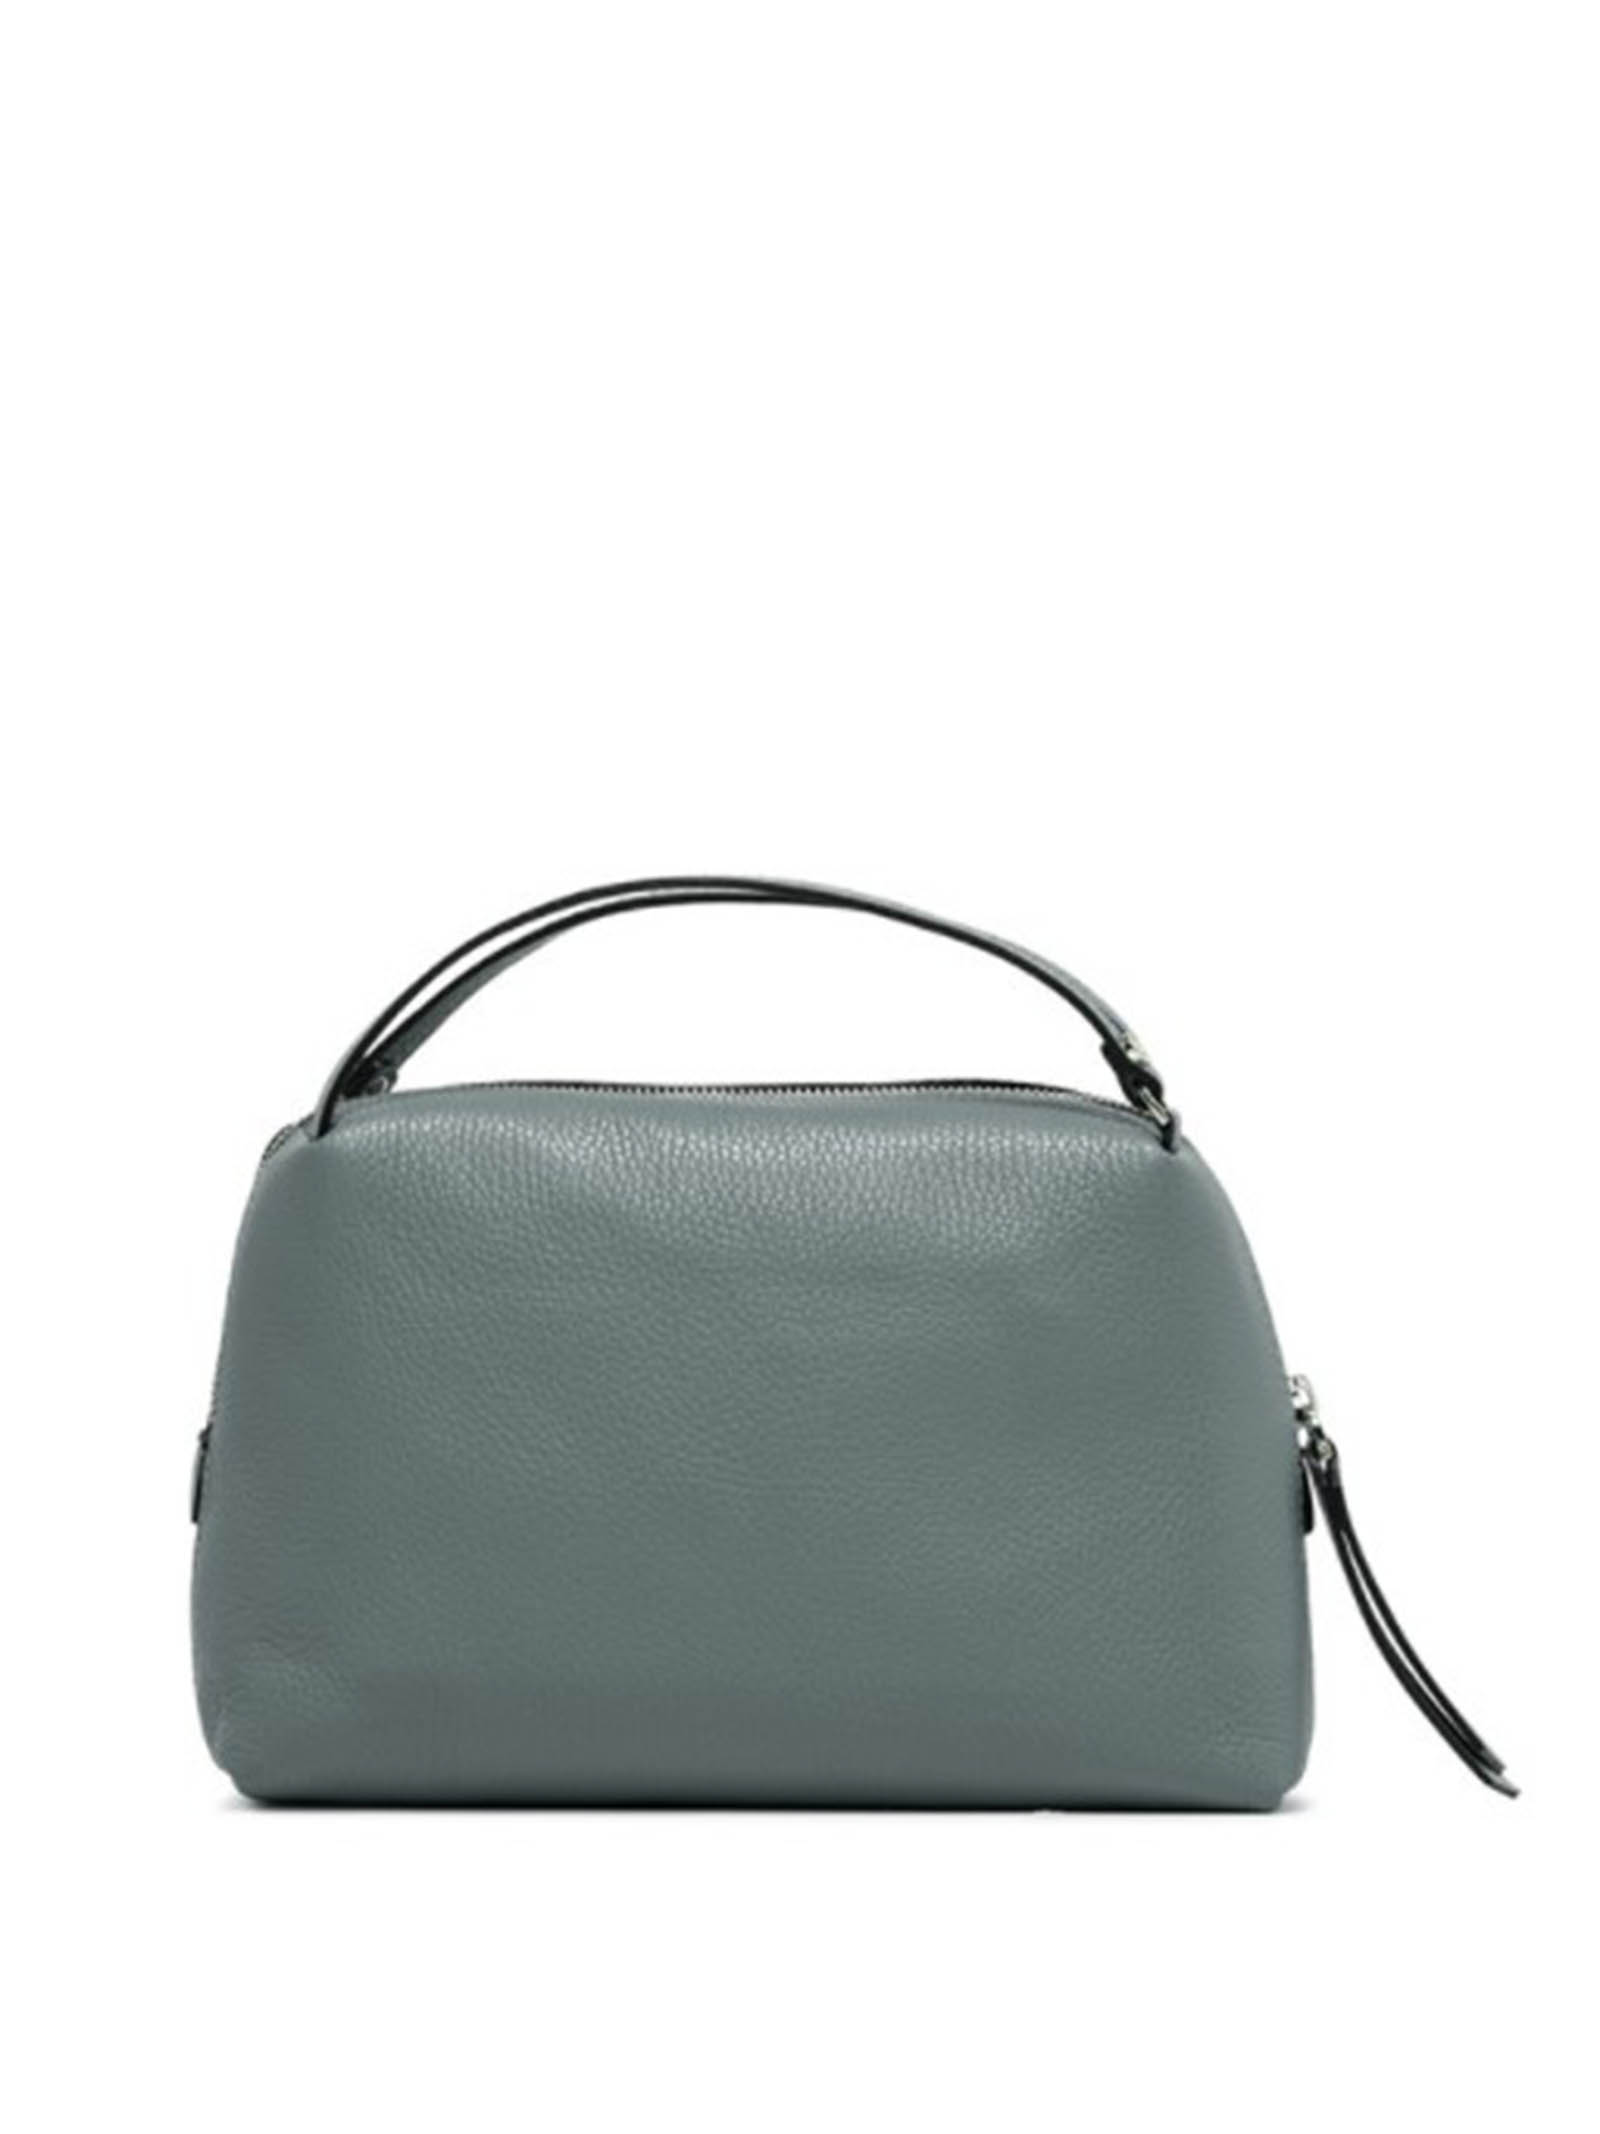 Women's Bag Clutch Maxi Alifa In Blue Leather With Adjustable And Detachable Cross-body Strap Gianni Chiarini   Bags and backpacks   BS814812064